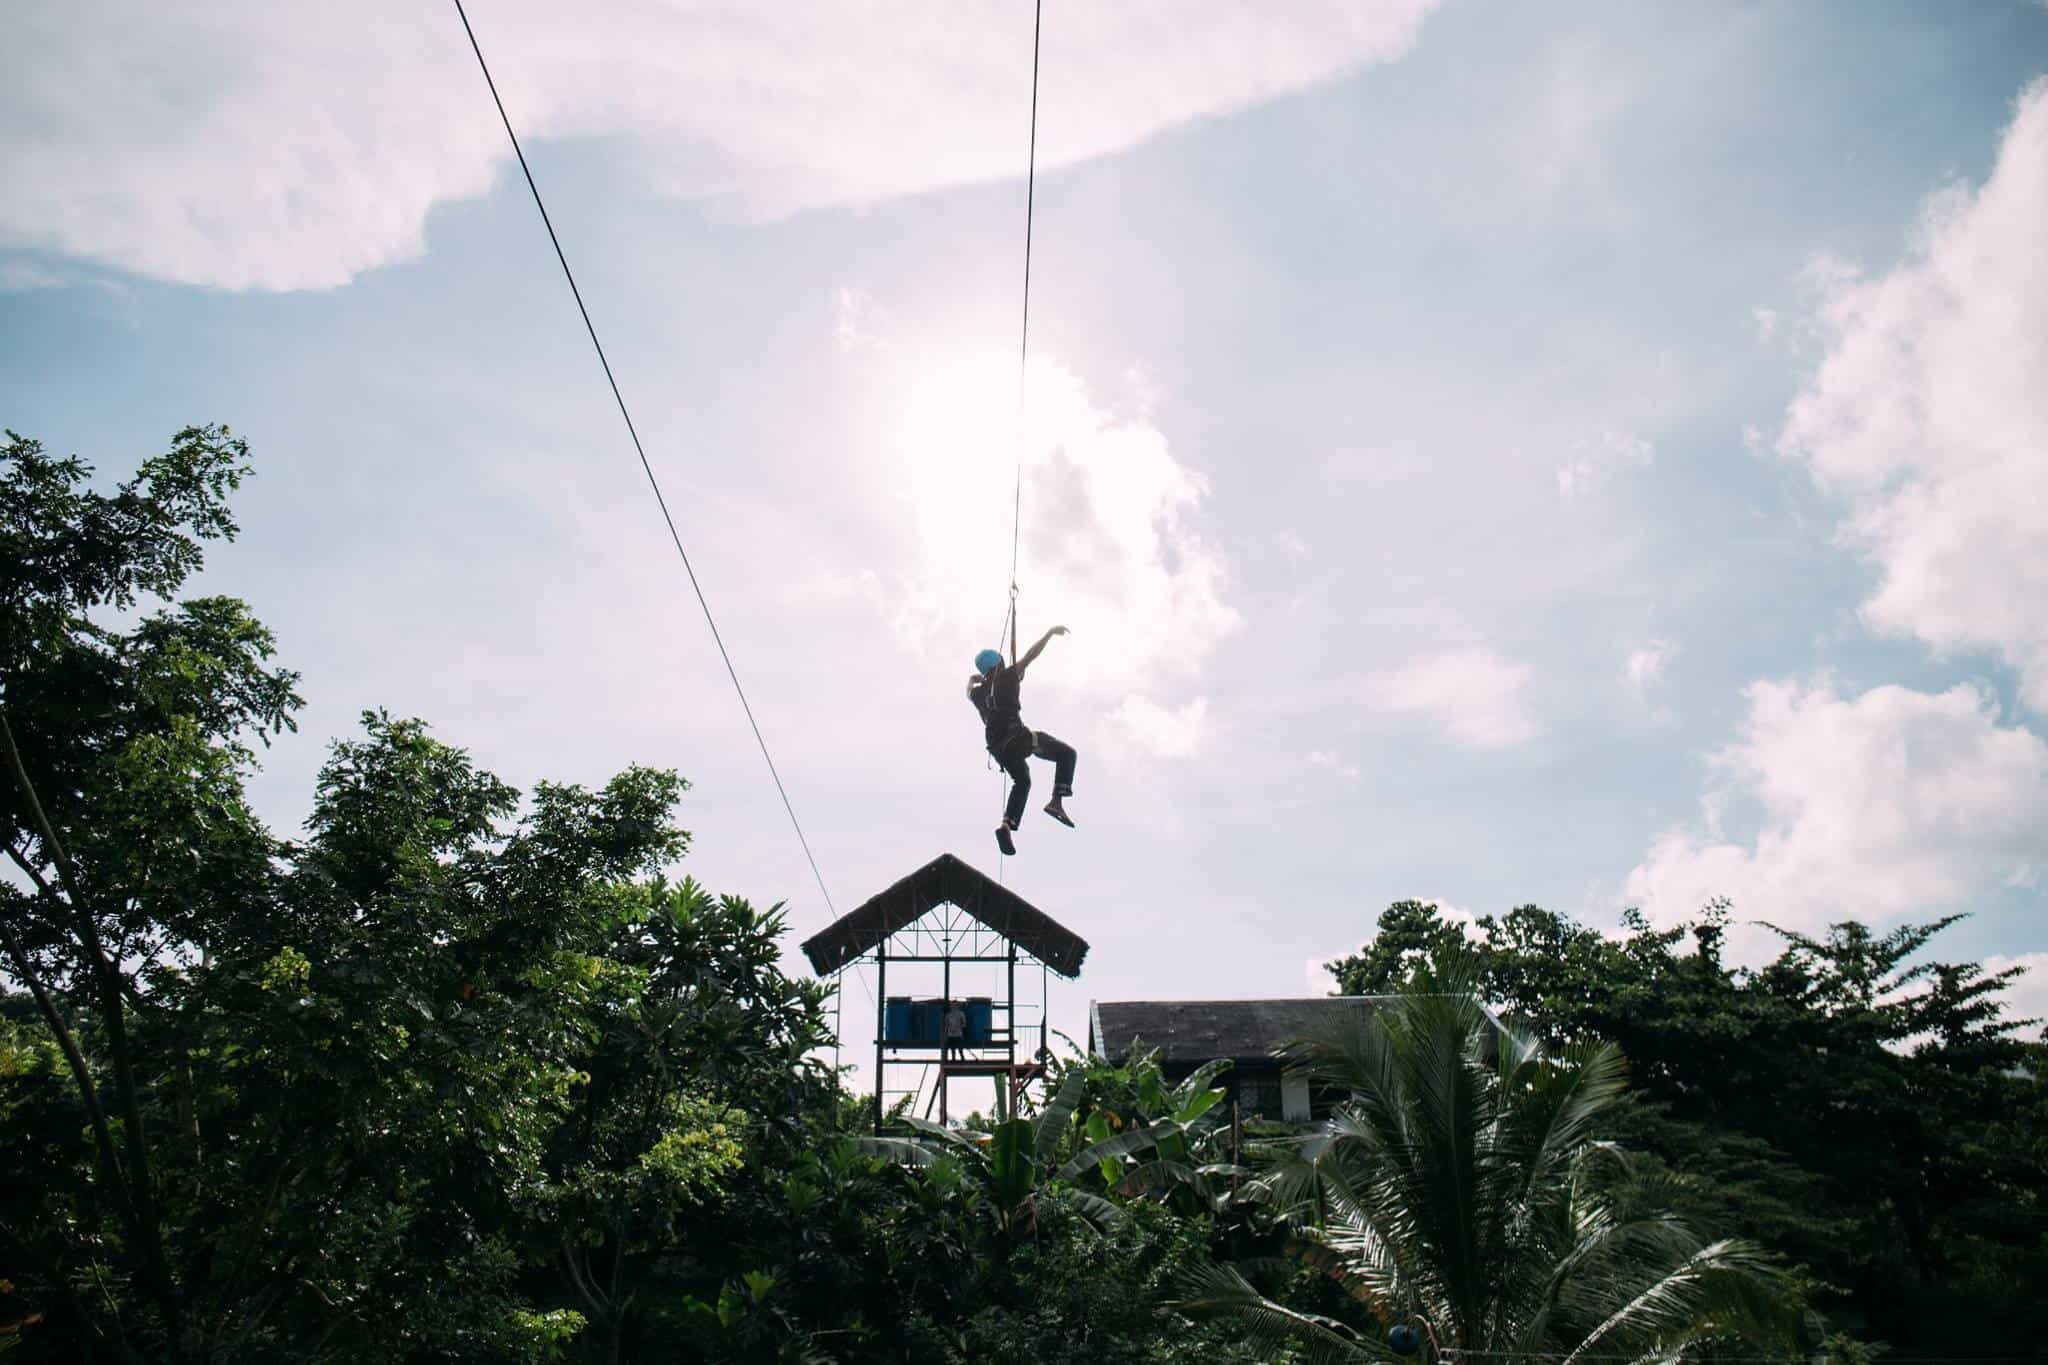 monteray-farm-resort-zipline